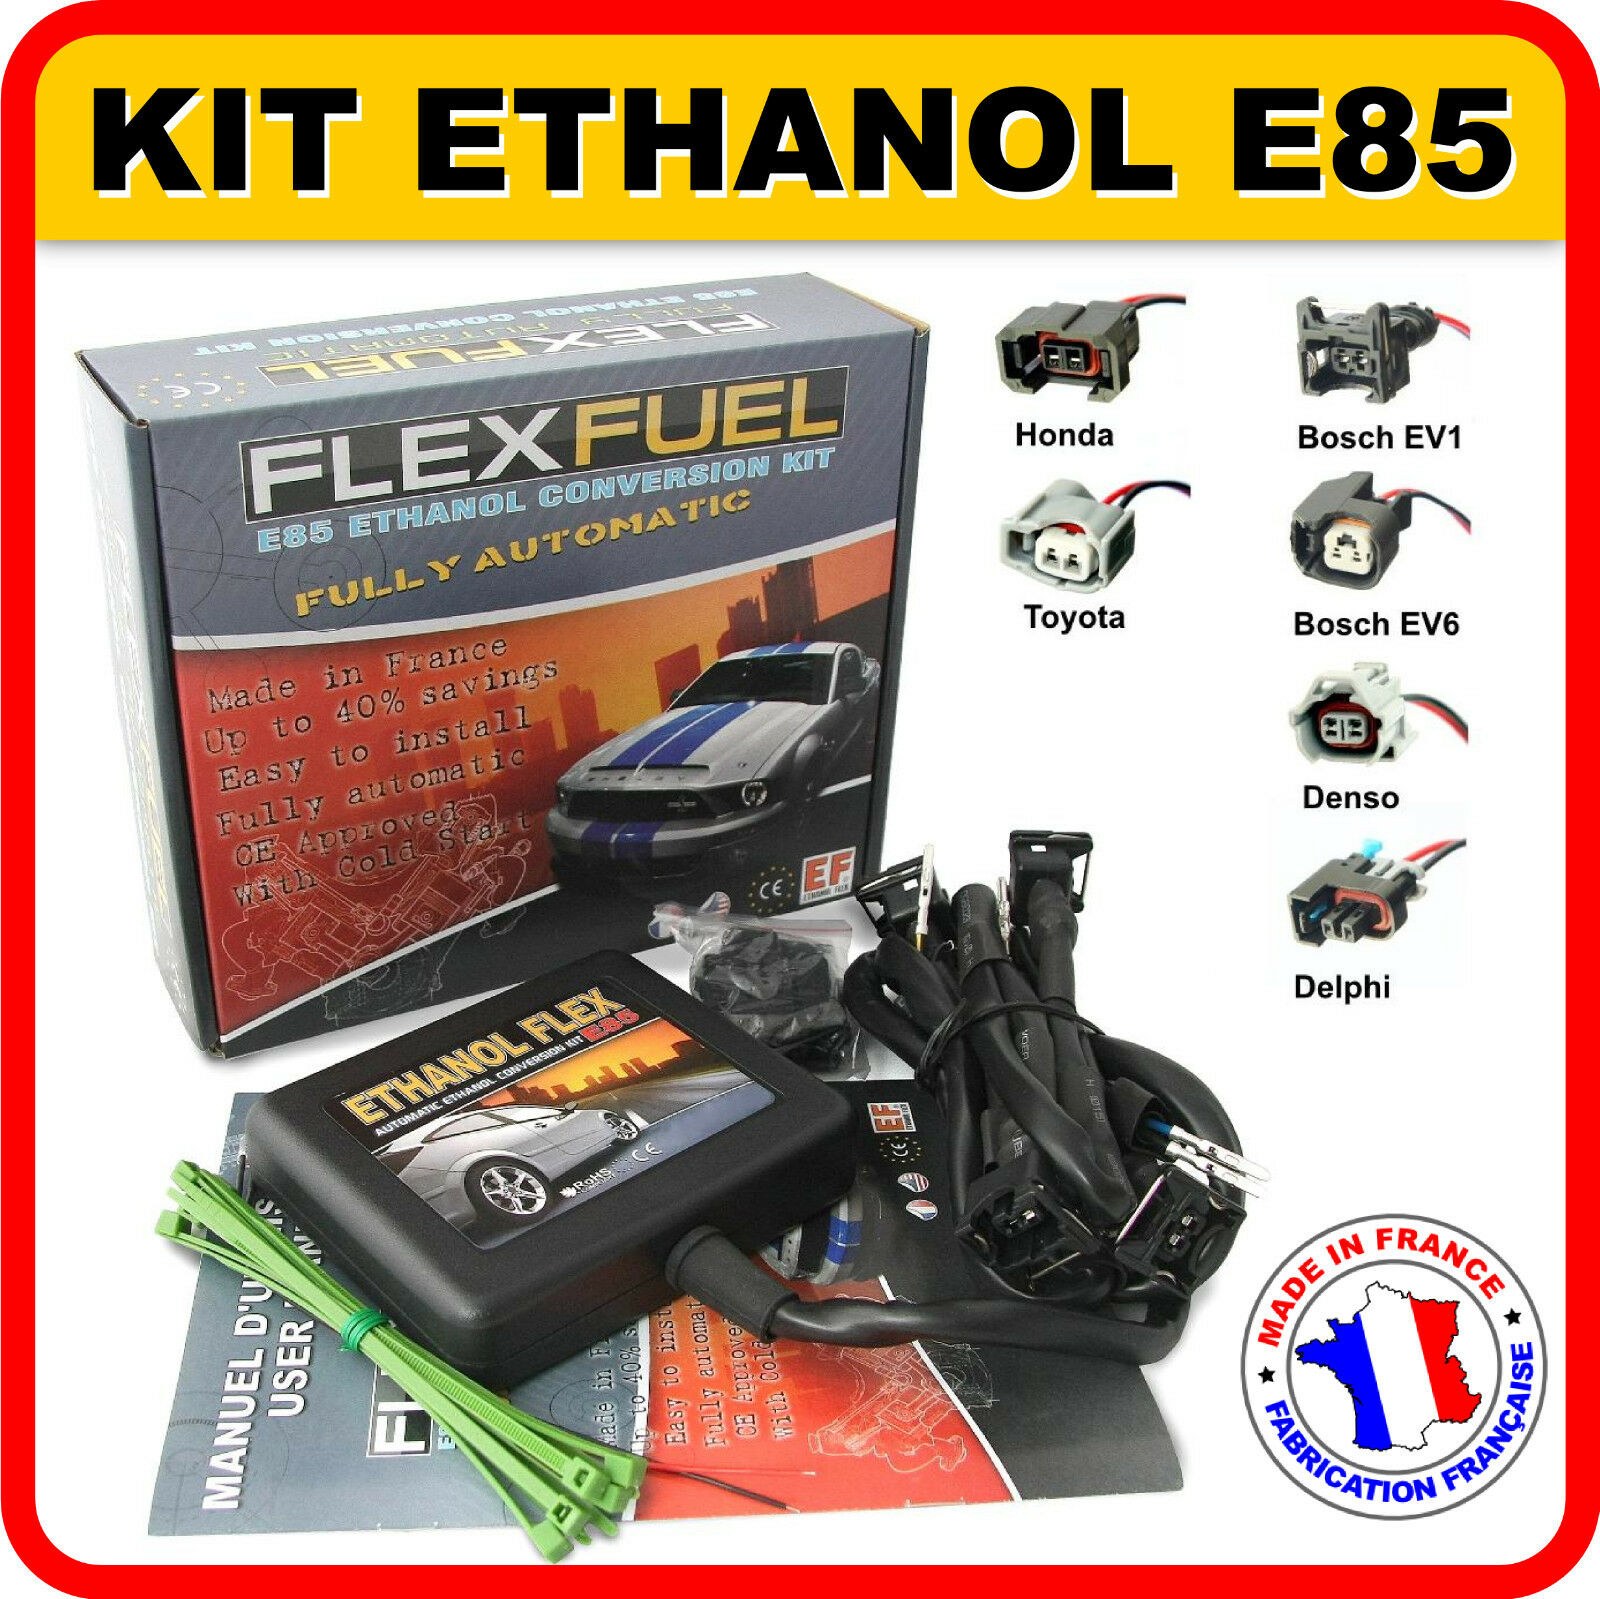 e85 ethanol kit kit e85 ethanol flex kit bioethanol html autos weblog. Black Bedroom Furniture Sets. Home Design Ideas